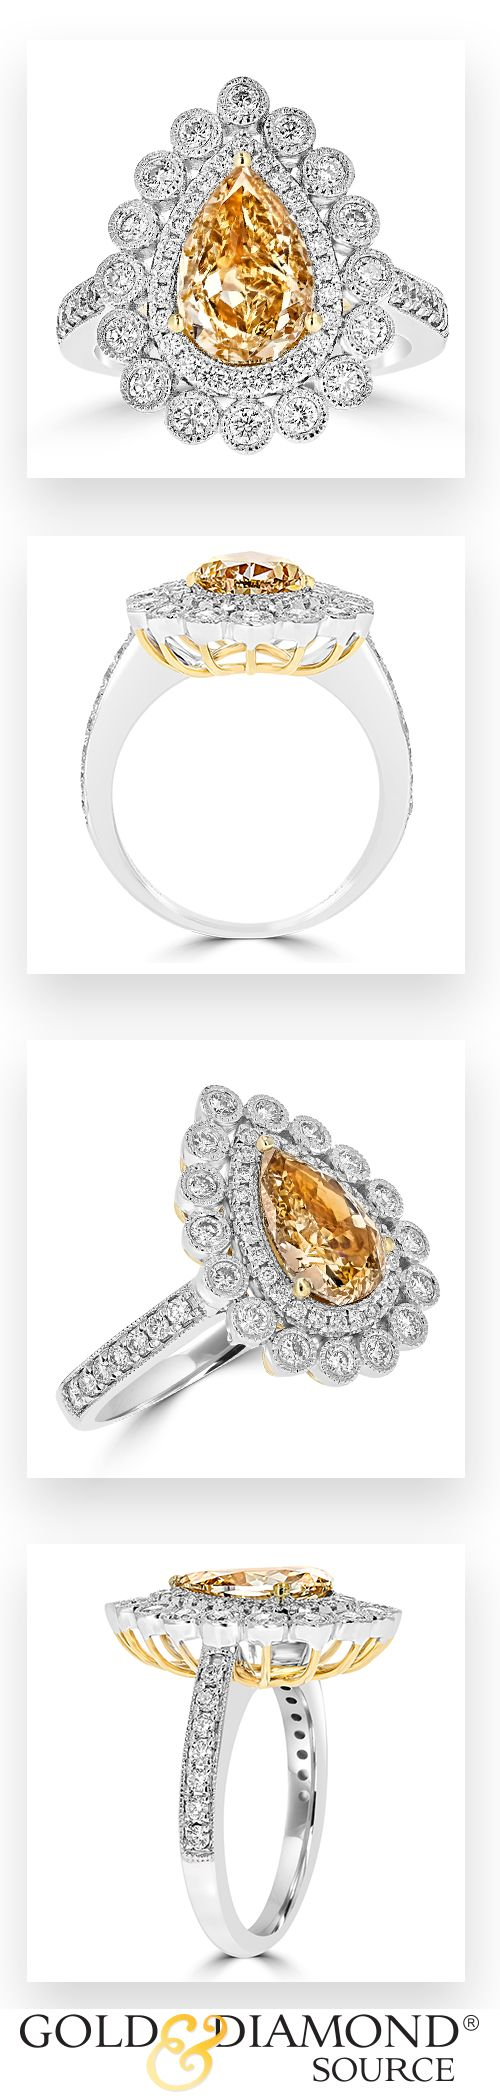 This Glamorous Juleve Ring Features one of a kind GIA Certified Fancy Brown Yellow & White Diamonds! The Ring Features a Lustrous Center 2.03 Carat Pear Shape Fancy Brown Yellow Diamond with SI1 Clarity. The Diamond is G.I. A Certified & is Surrounded by 0.74 Carat Total Weight Side Round Diamonds. The Diamonds are set in 18 Karat White & Yellow Gold. This Ring was Designed & Manufactured in the U.S.A.